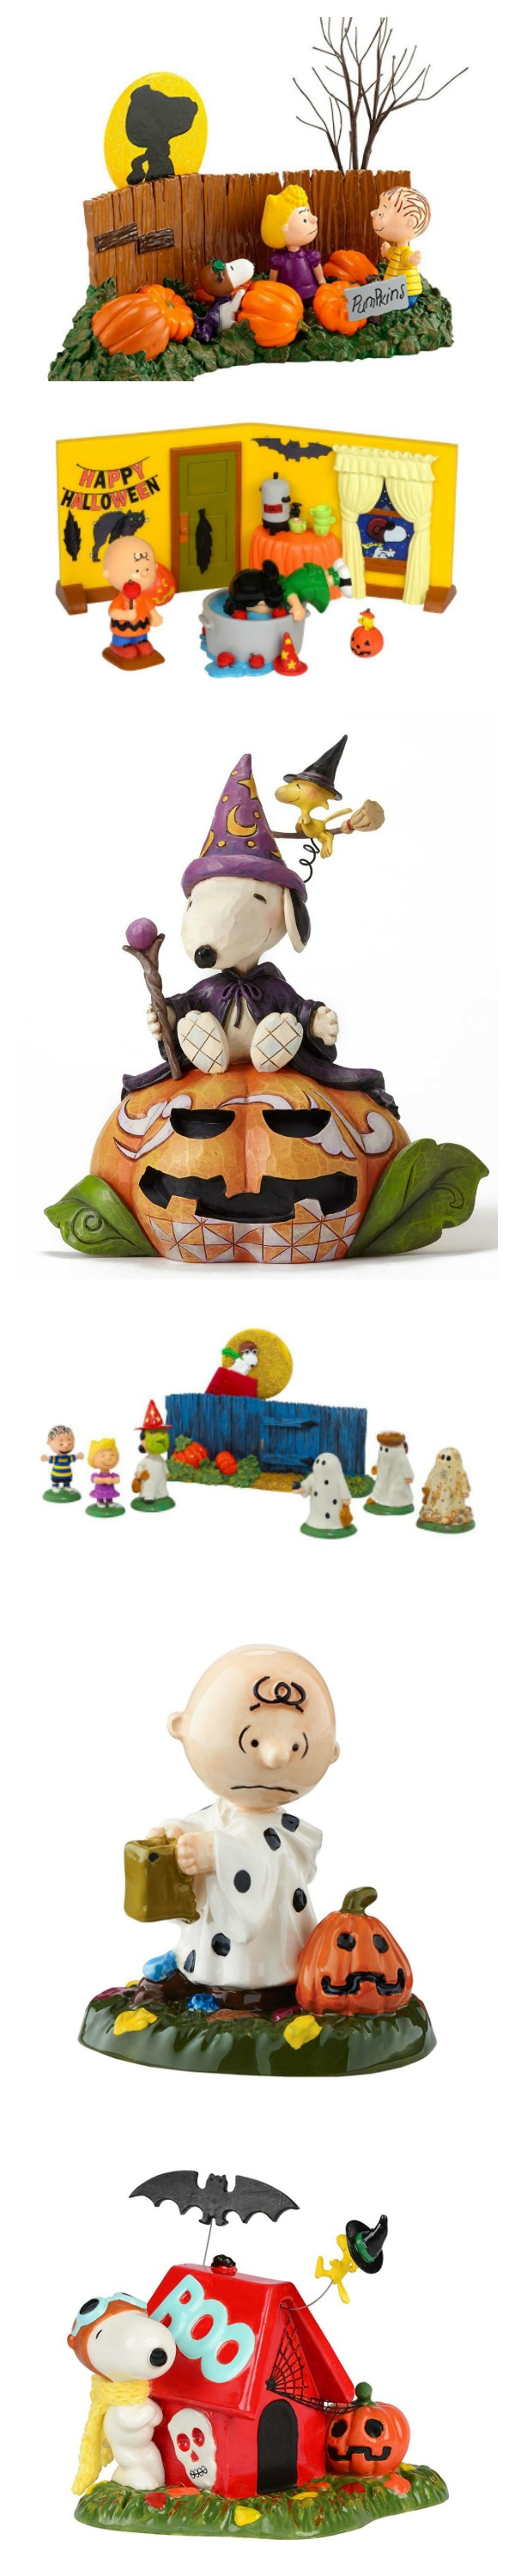 Peanuts Halloween Fun at Amazon | Pinterest | Charlie brown, Snoopy ...